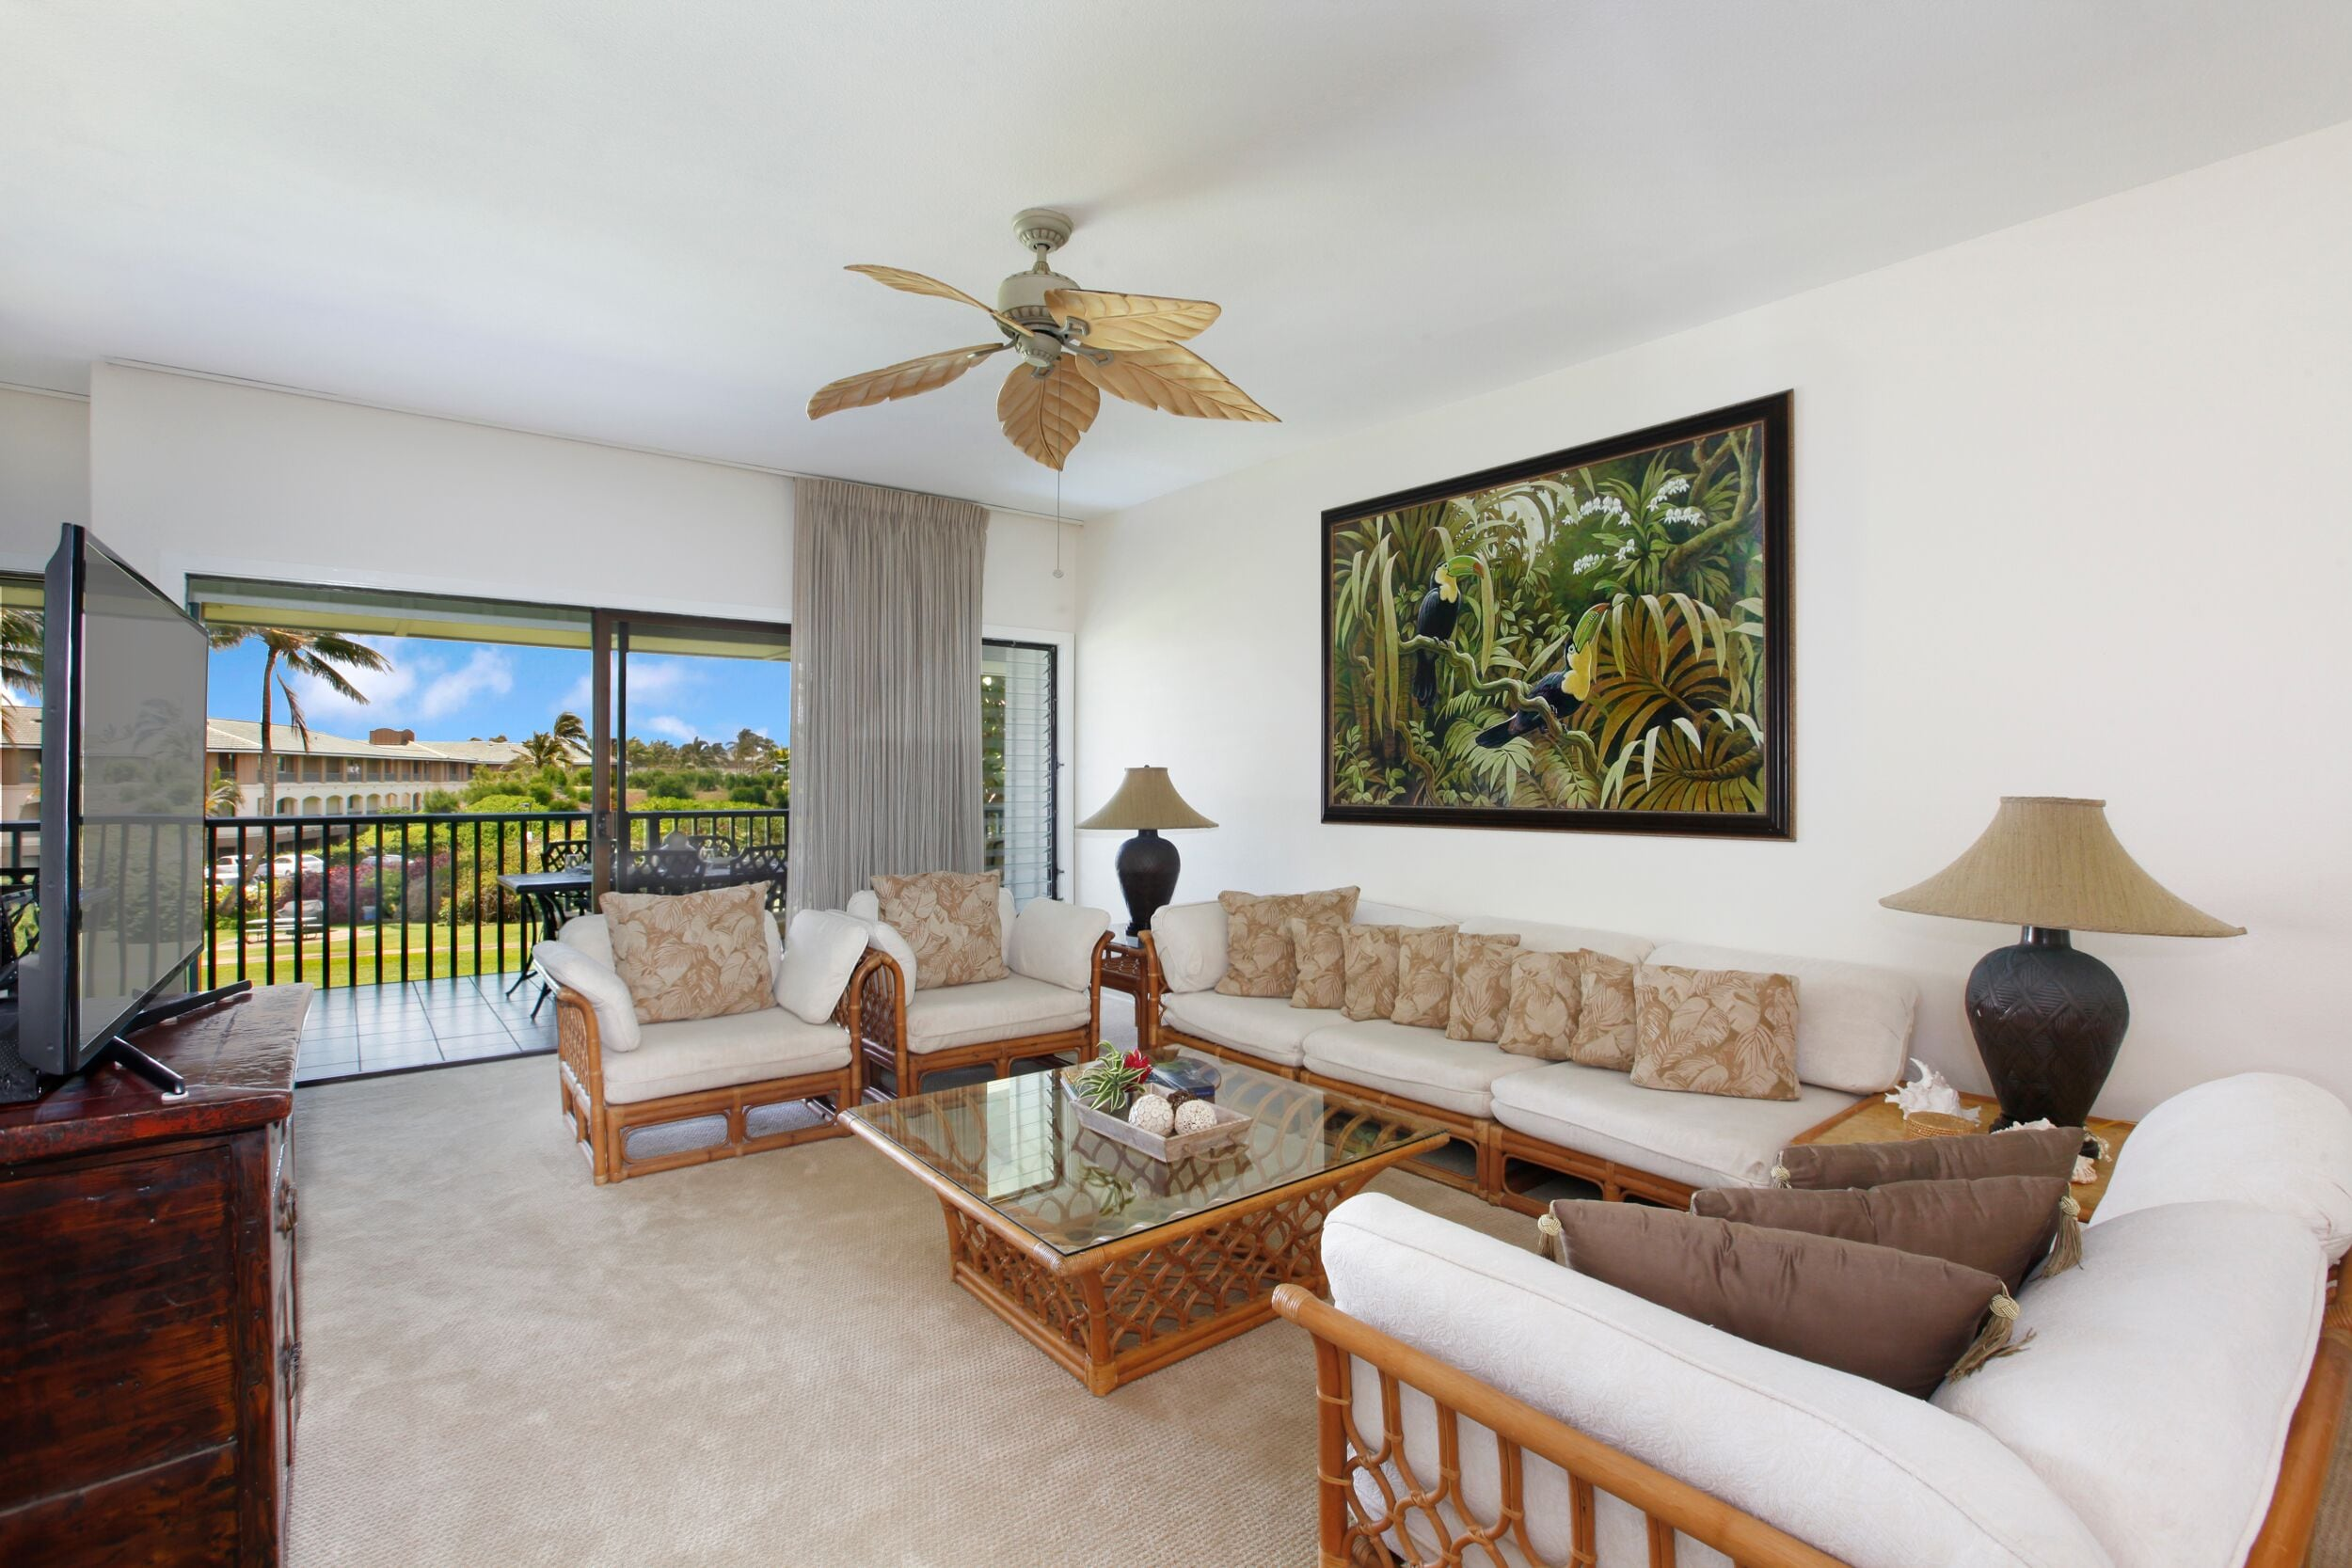 Property Image 2 - Large and Spacious Kauai Villa within a Short Walk to the Beach